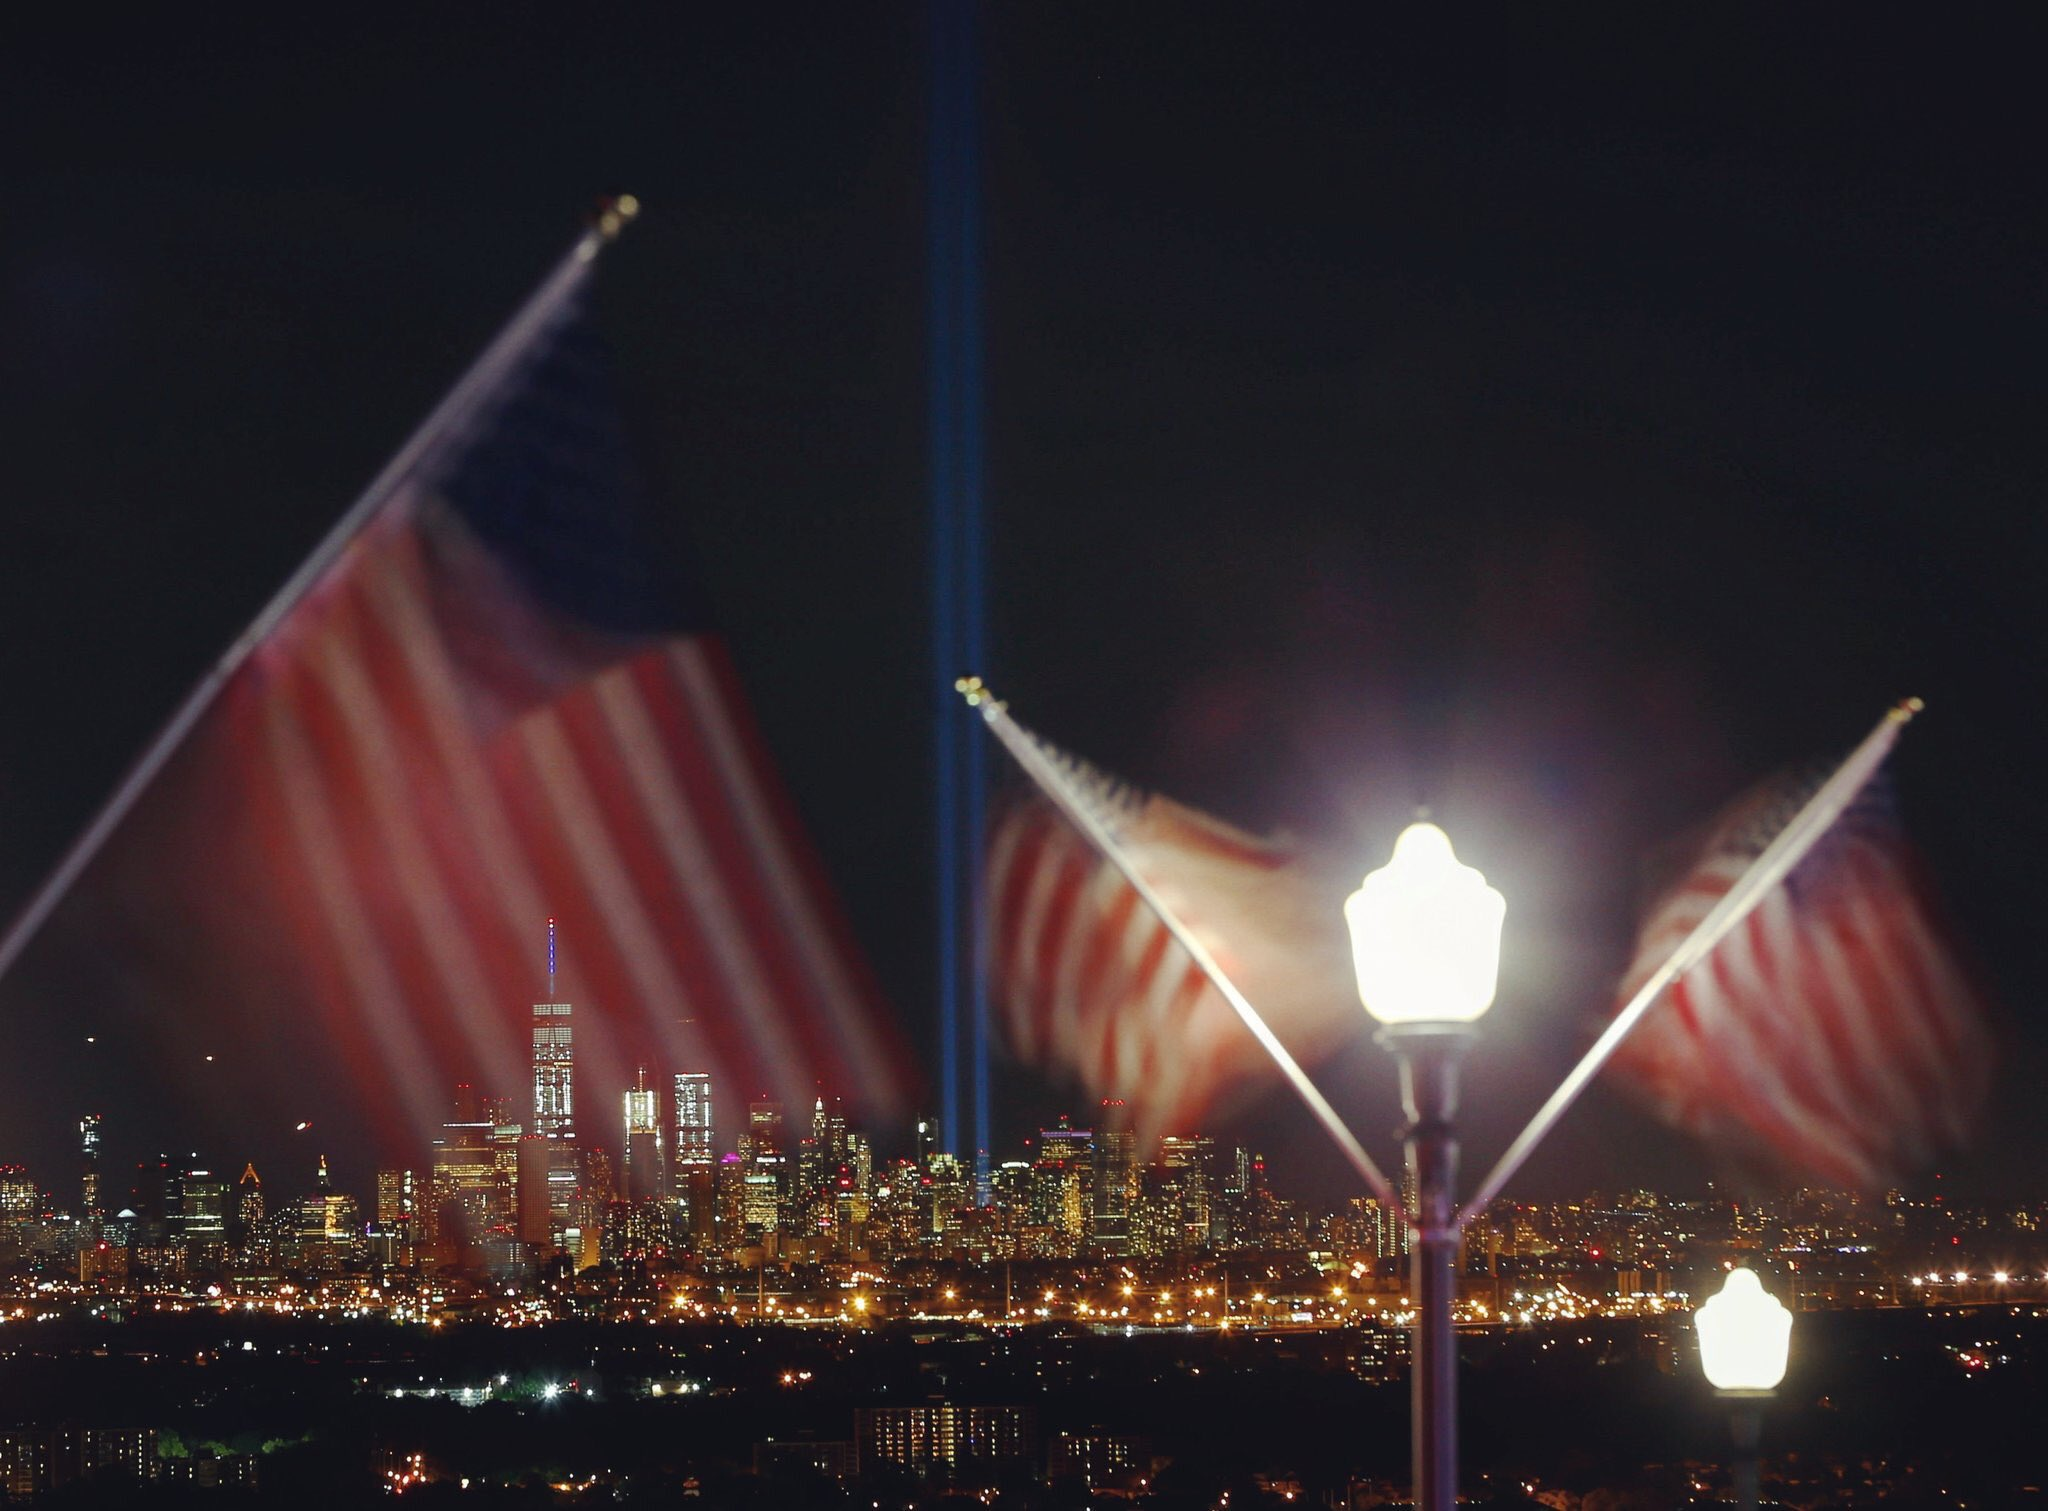 The #TributeInLight shines deep into the night sky to remember those lost. #NeverForget. ��: @GaryHershorn https://t.co/j9GIpq3Rng